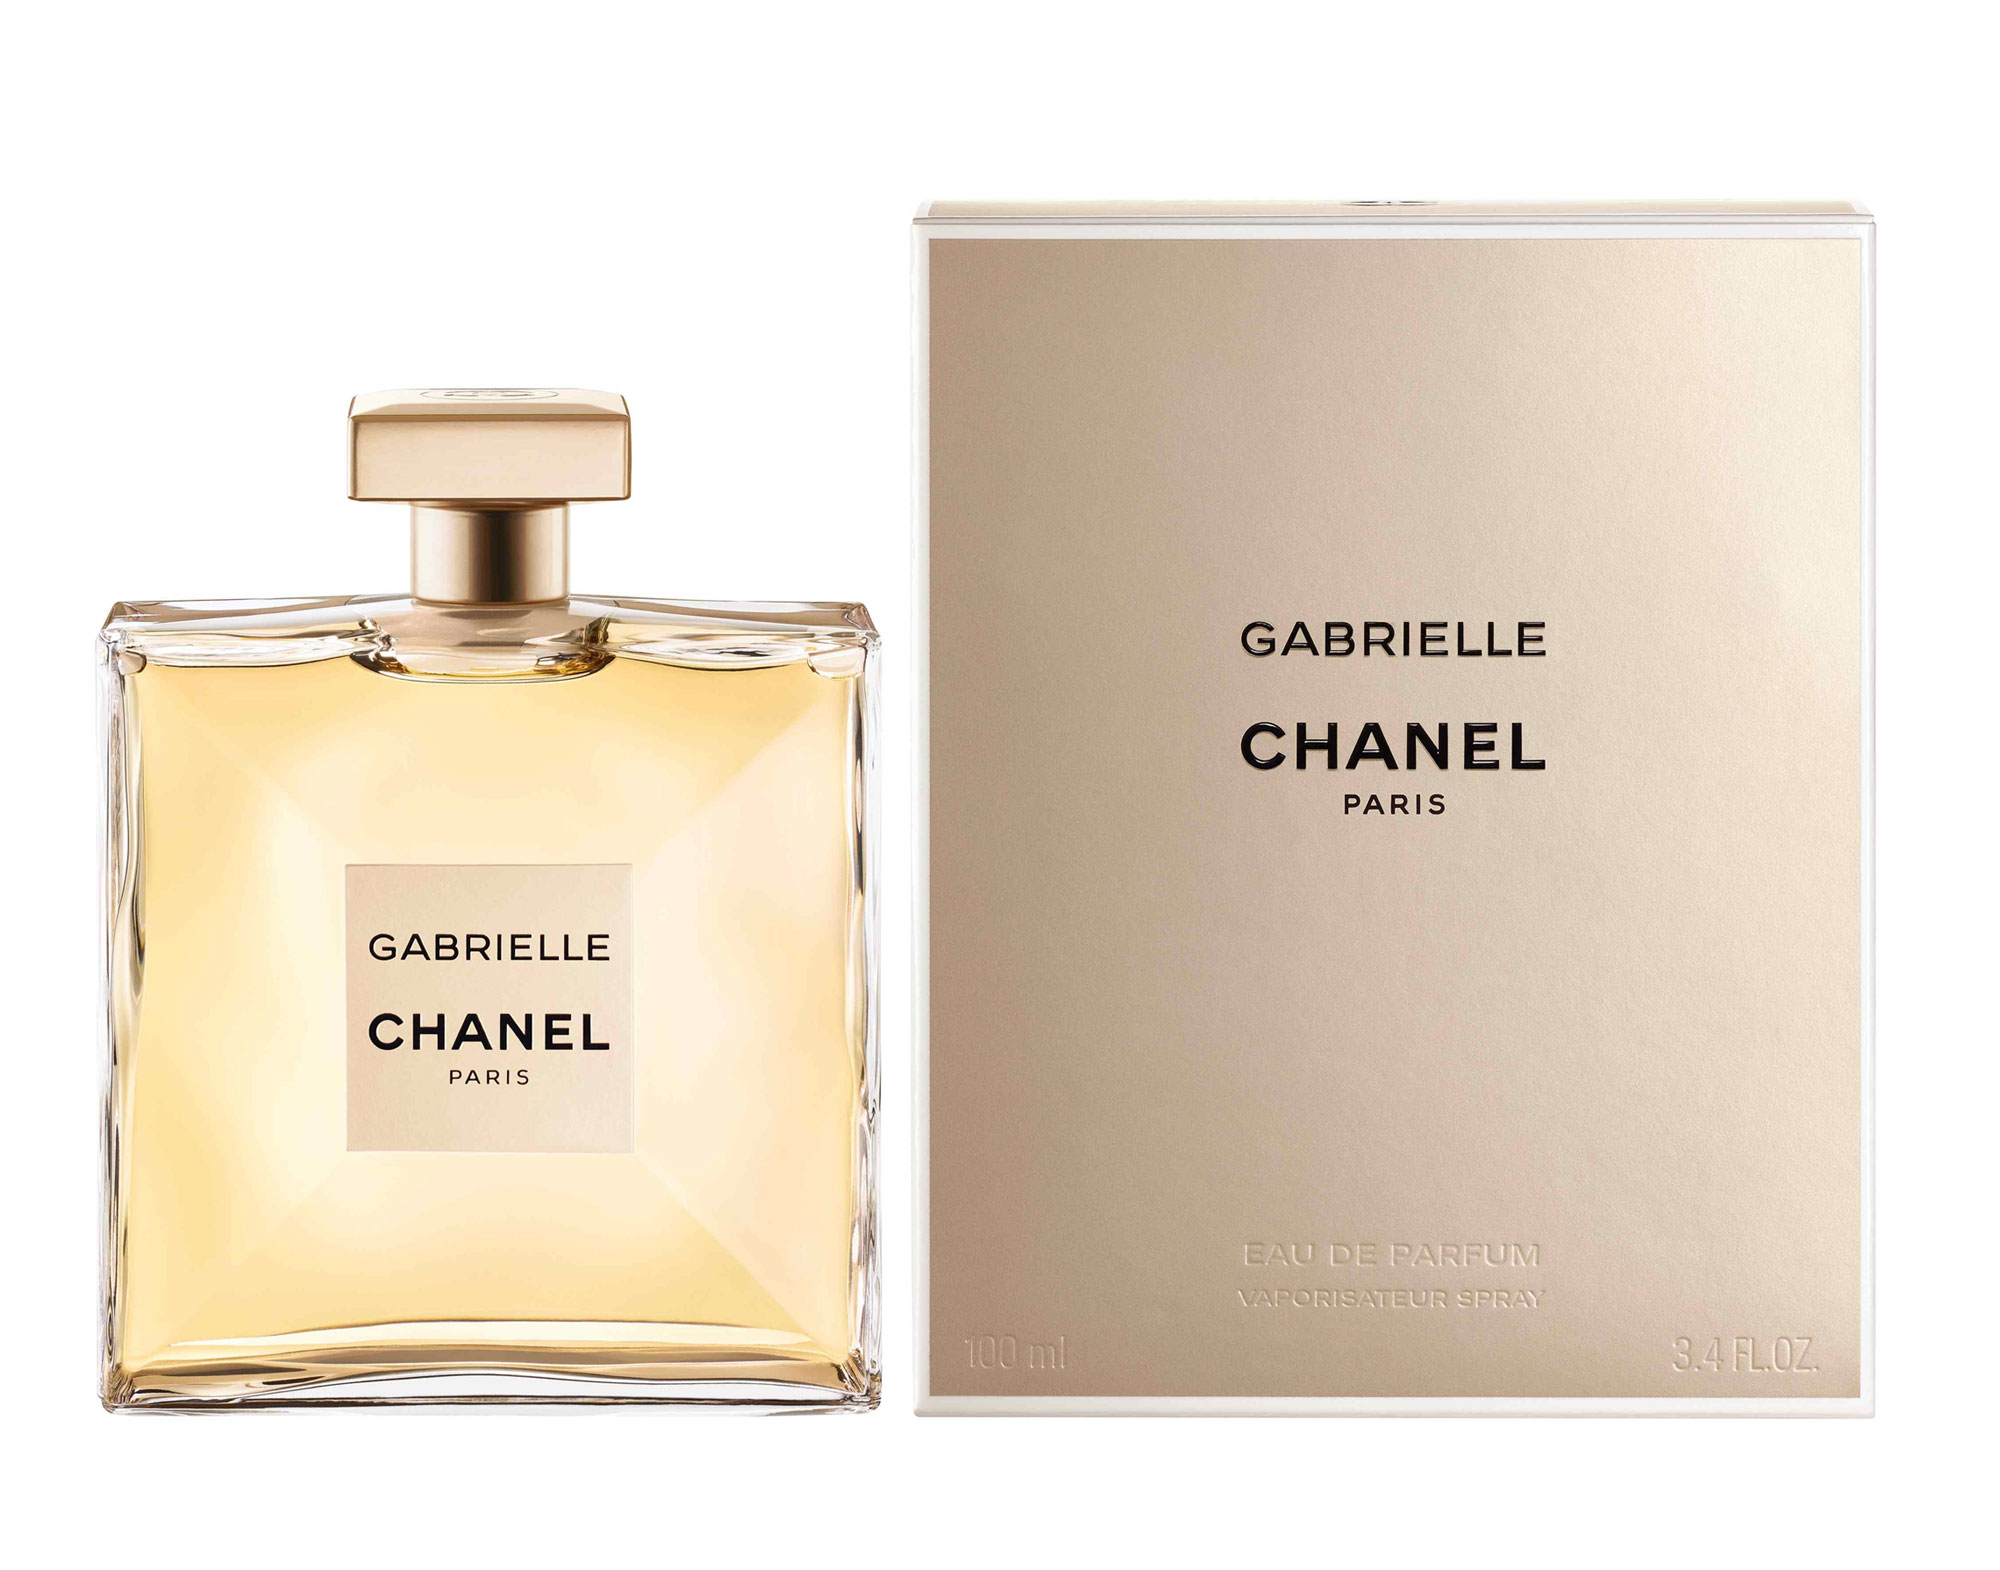 Chanel Gabrielle Gabrielle Chanel Perfume A New Fragrance For Women 2017